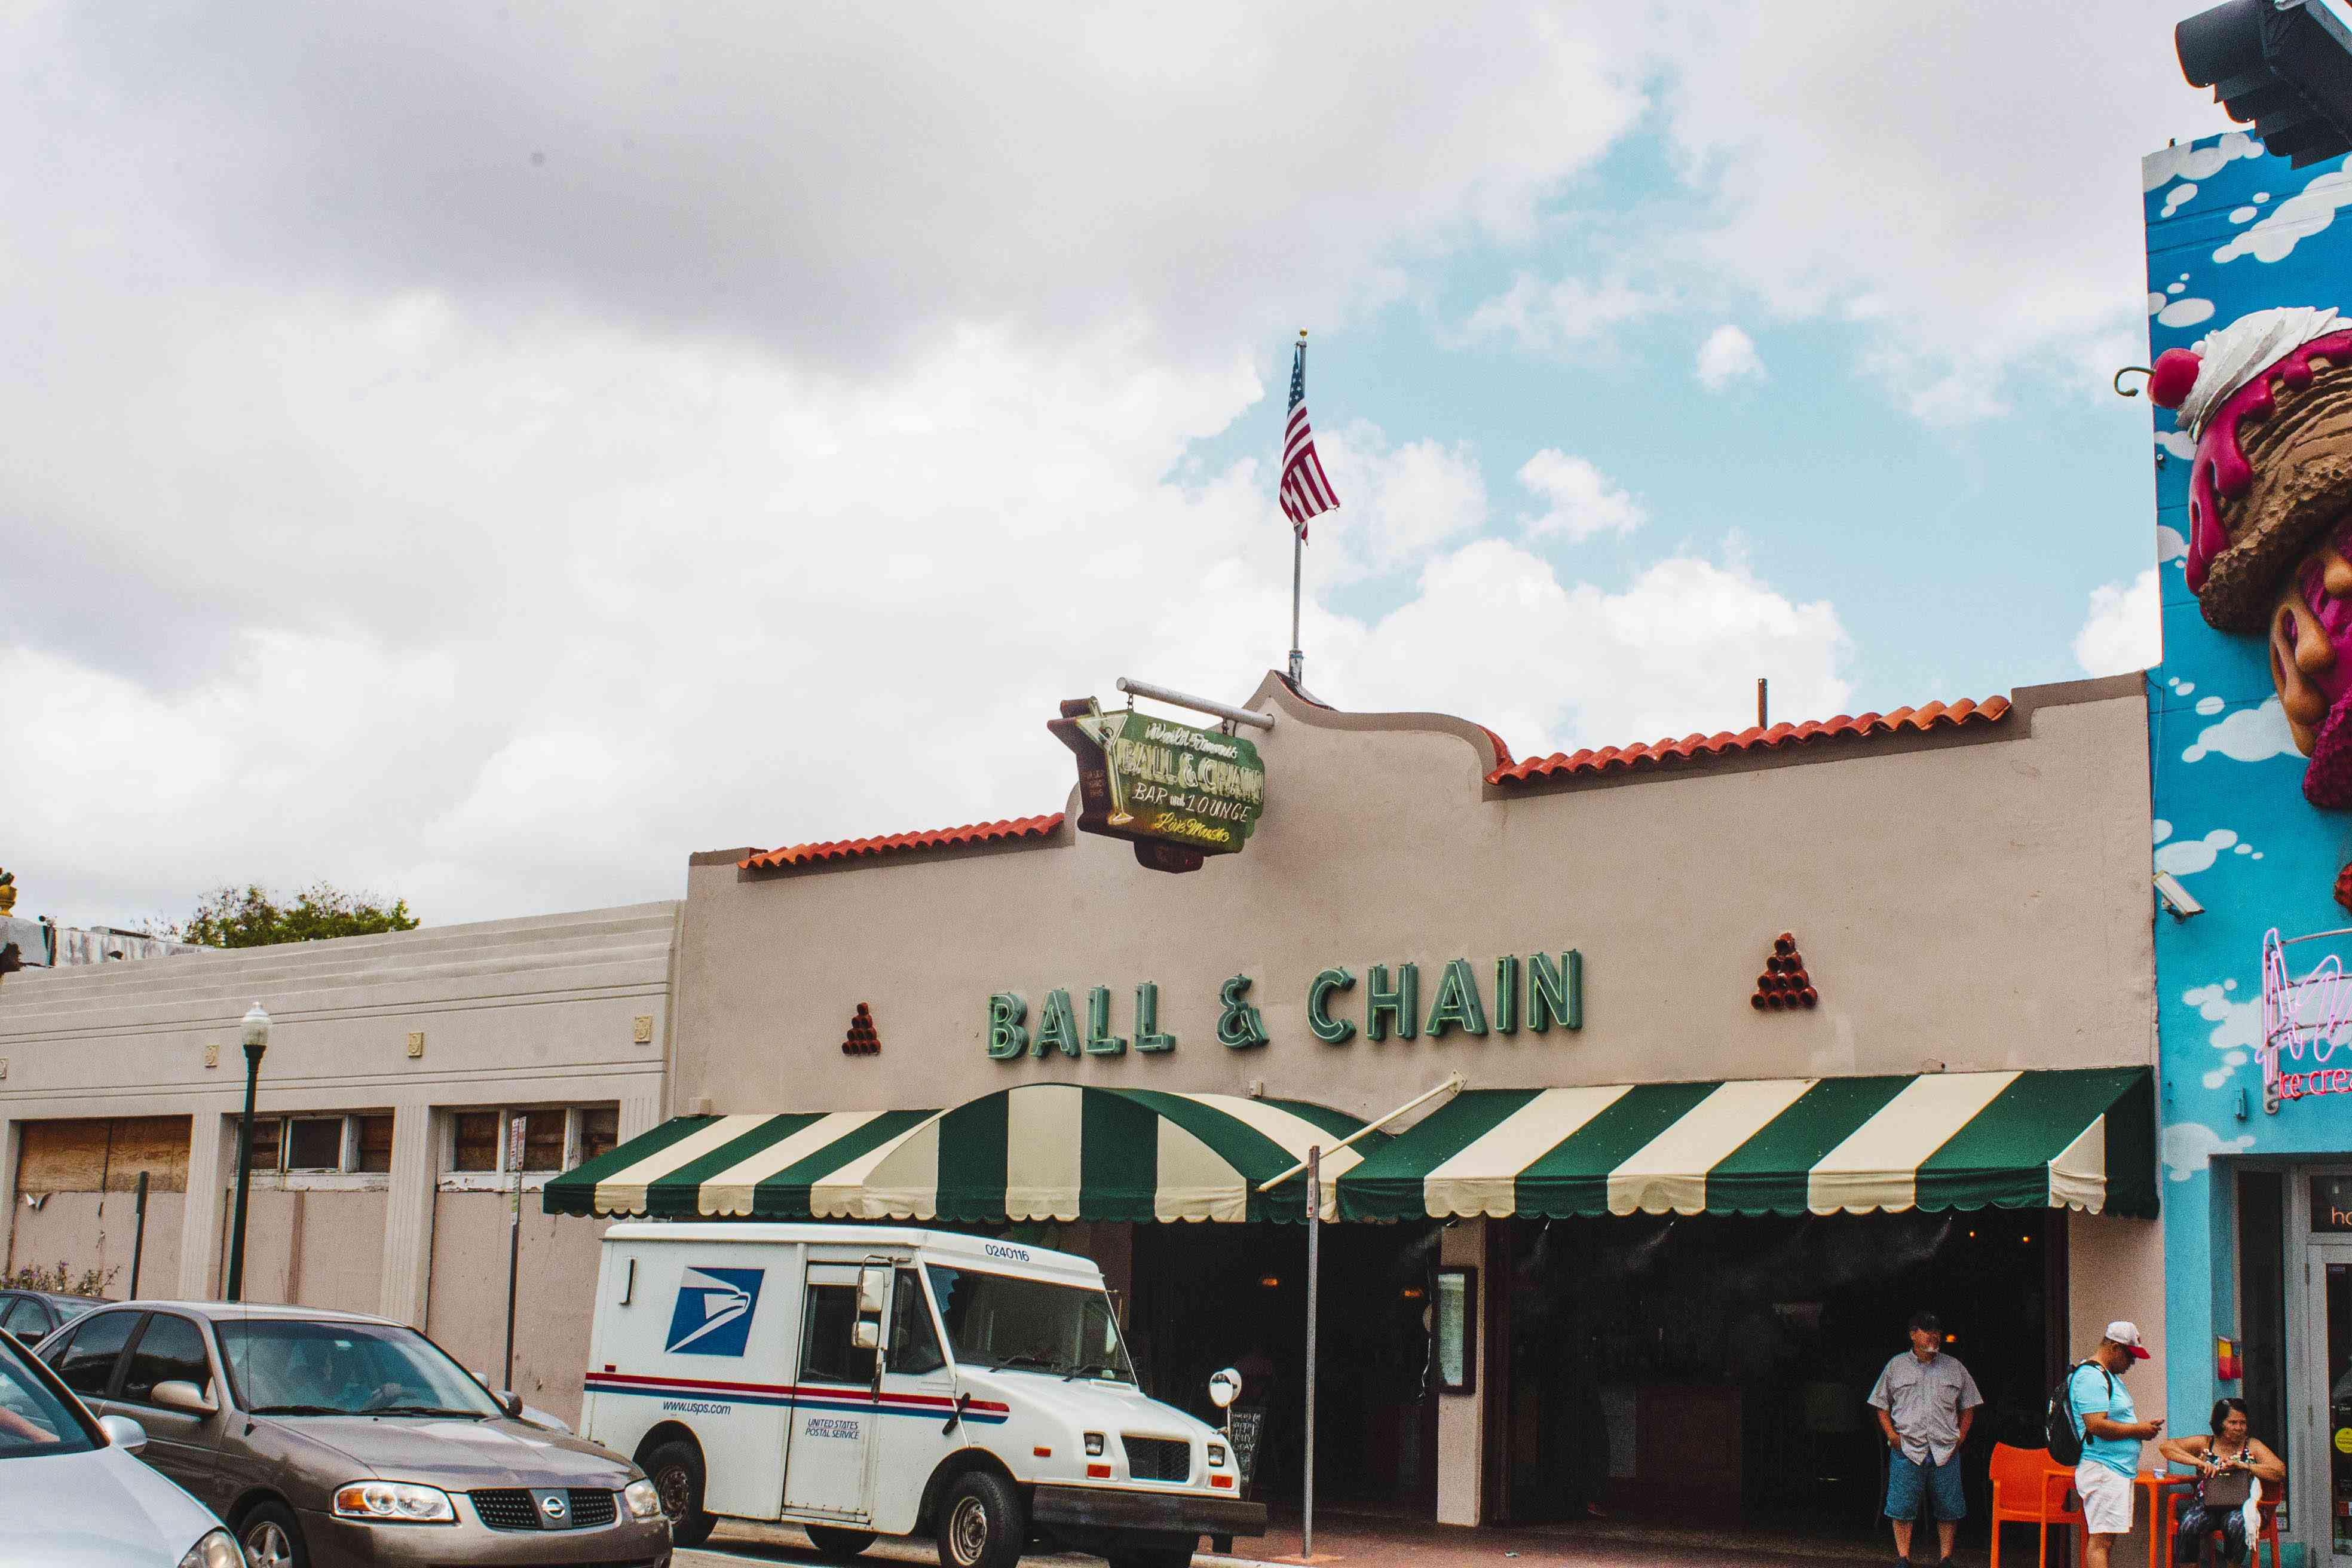 Exterior of Ball & Chain